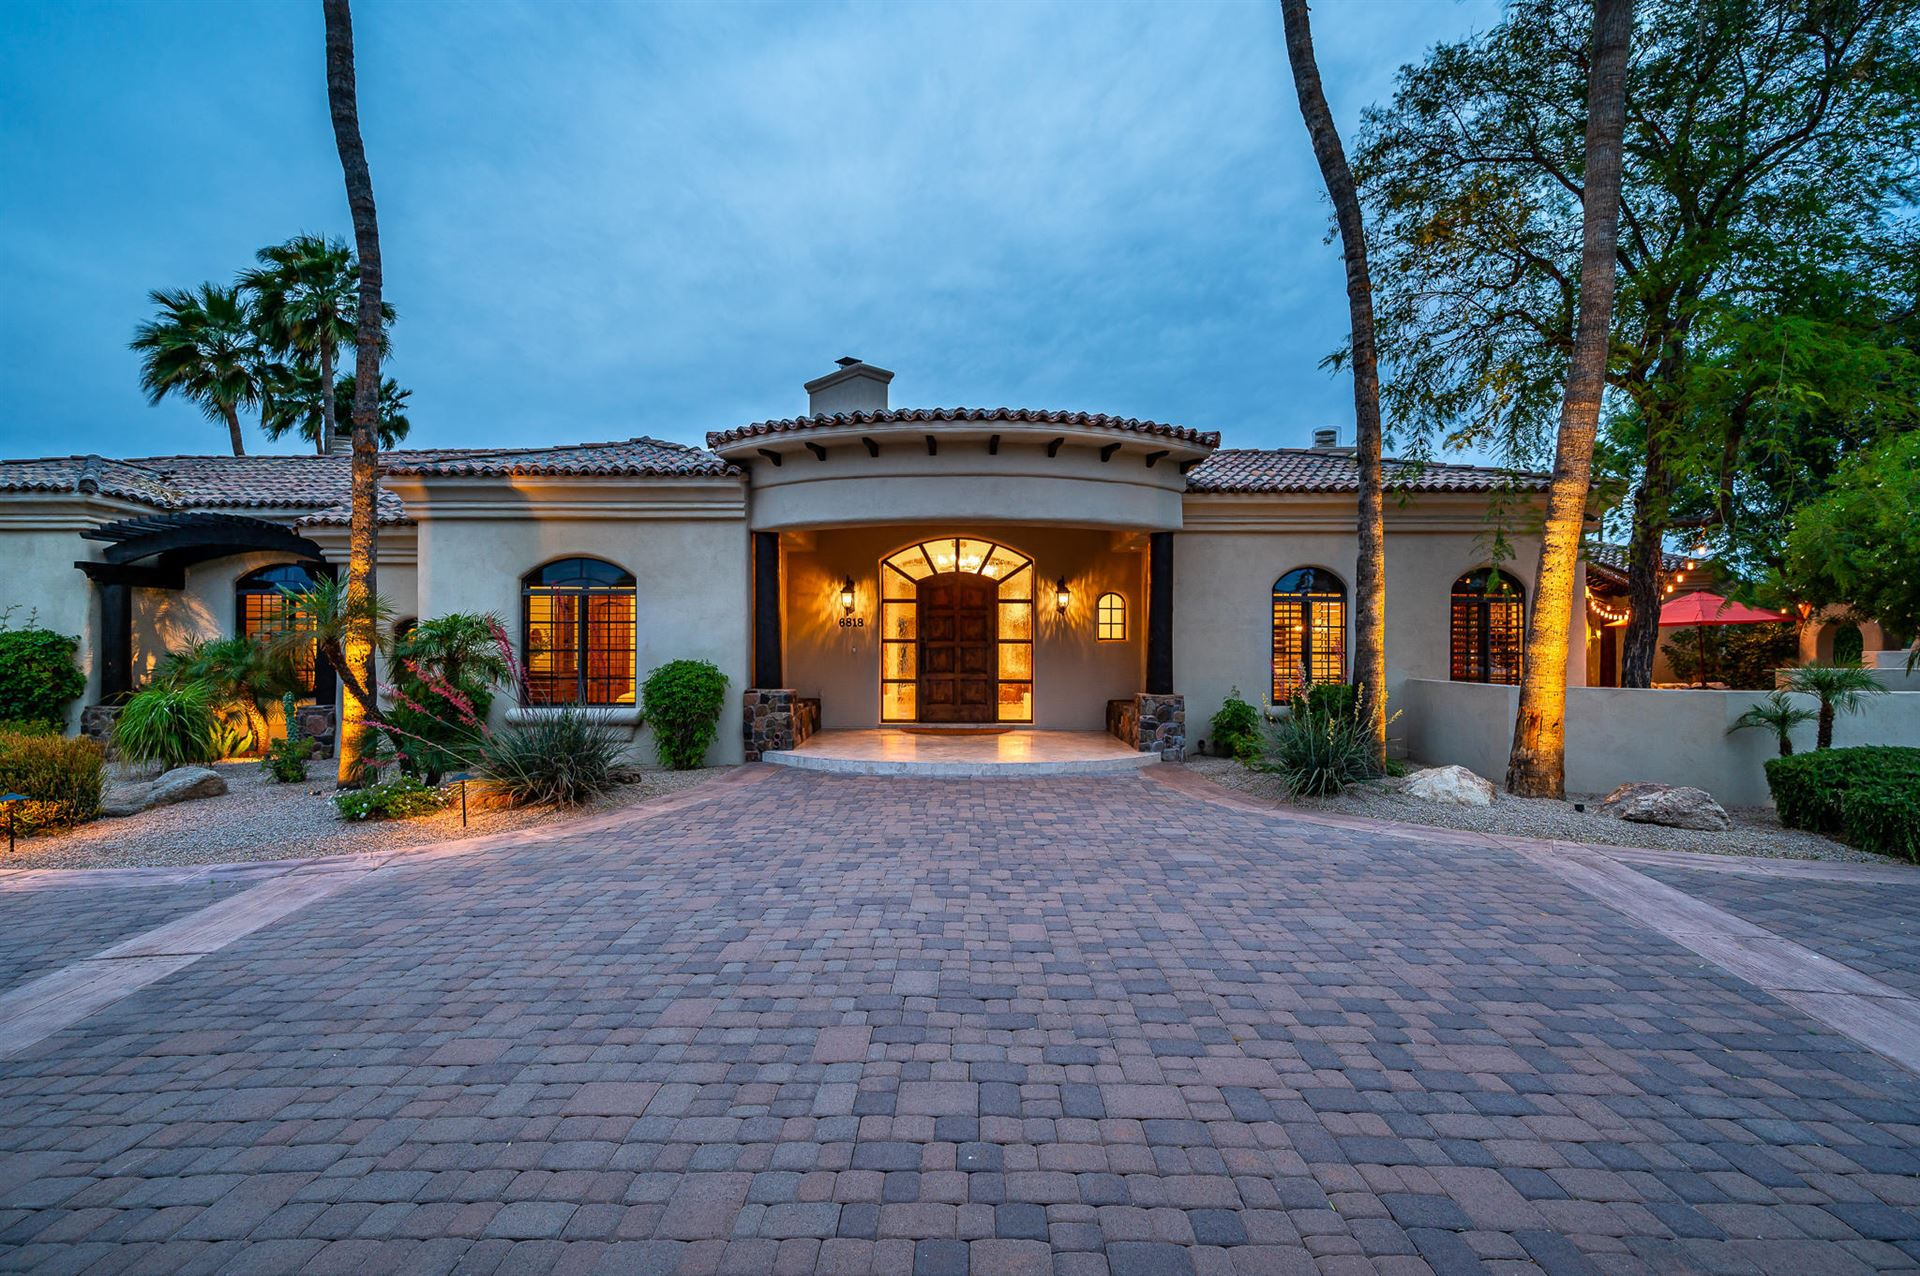 Photo of 6818 E Fanfol Drive, Paradise Valley, AZ 85253 (MLS # 6228250)